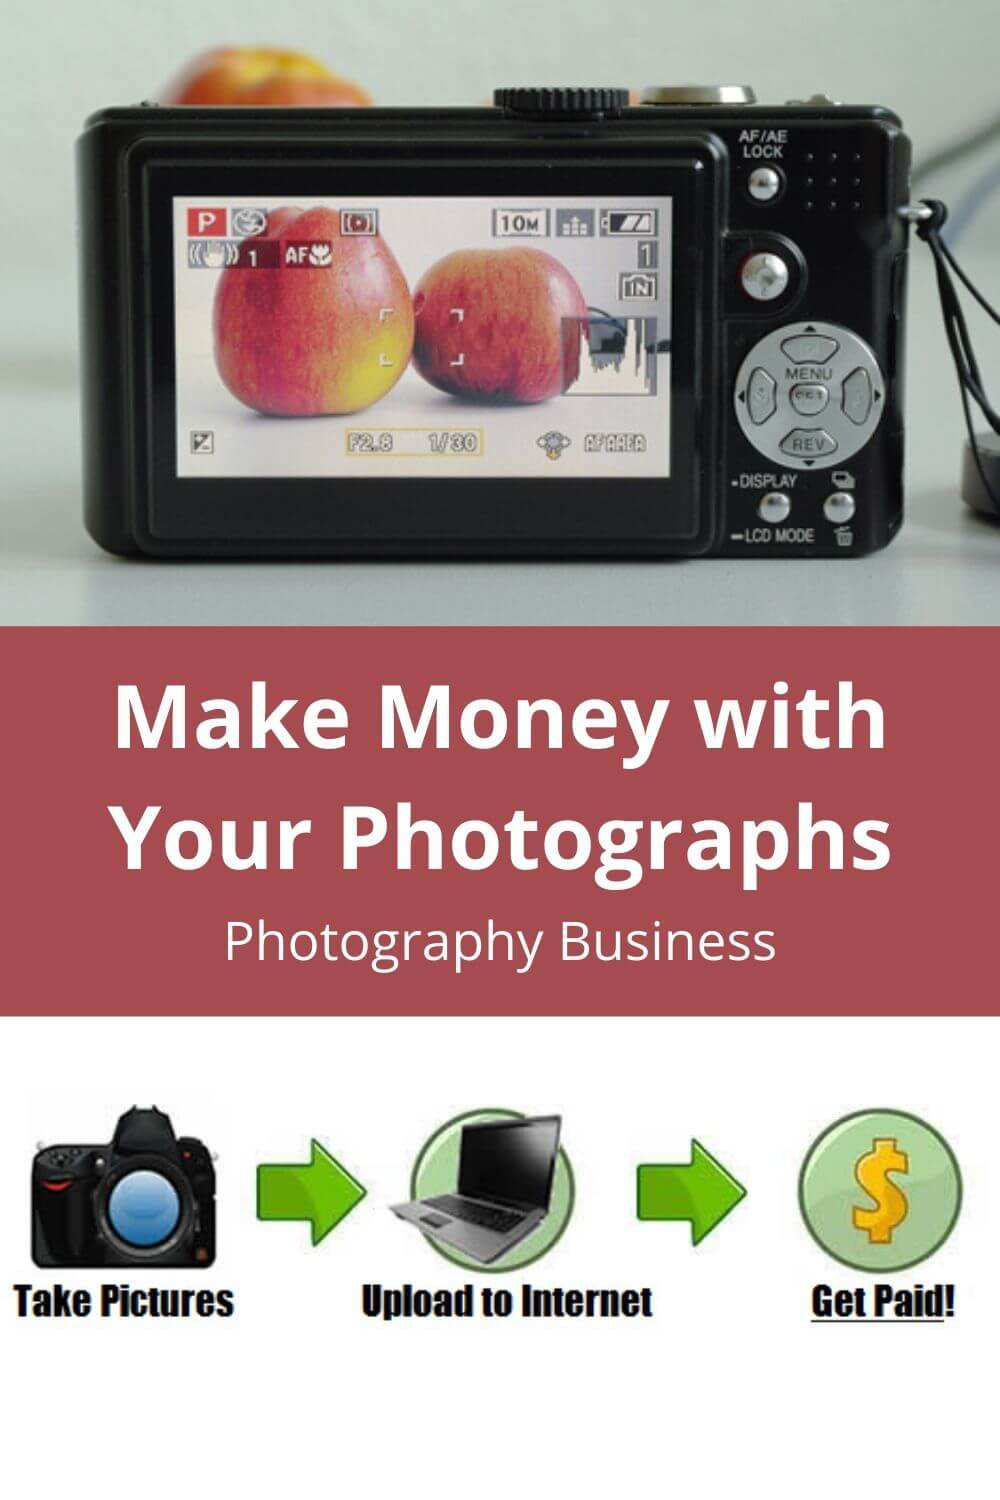 Make Money with Your Photographs